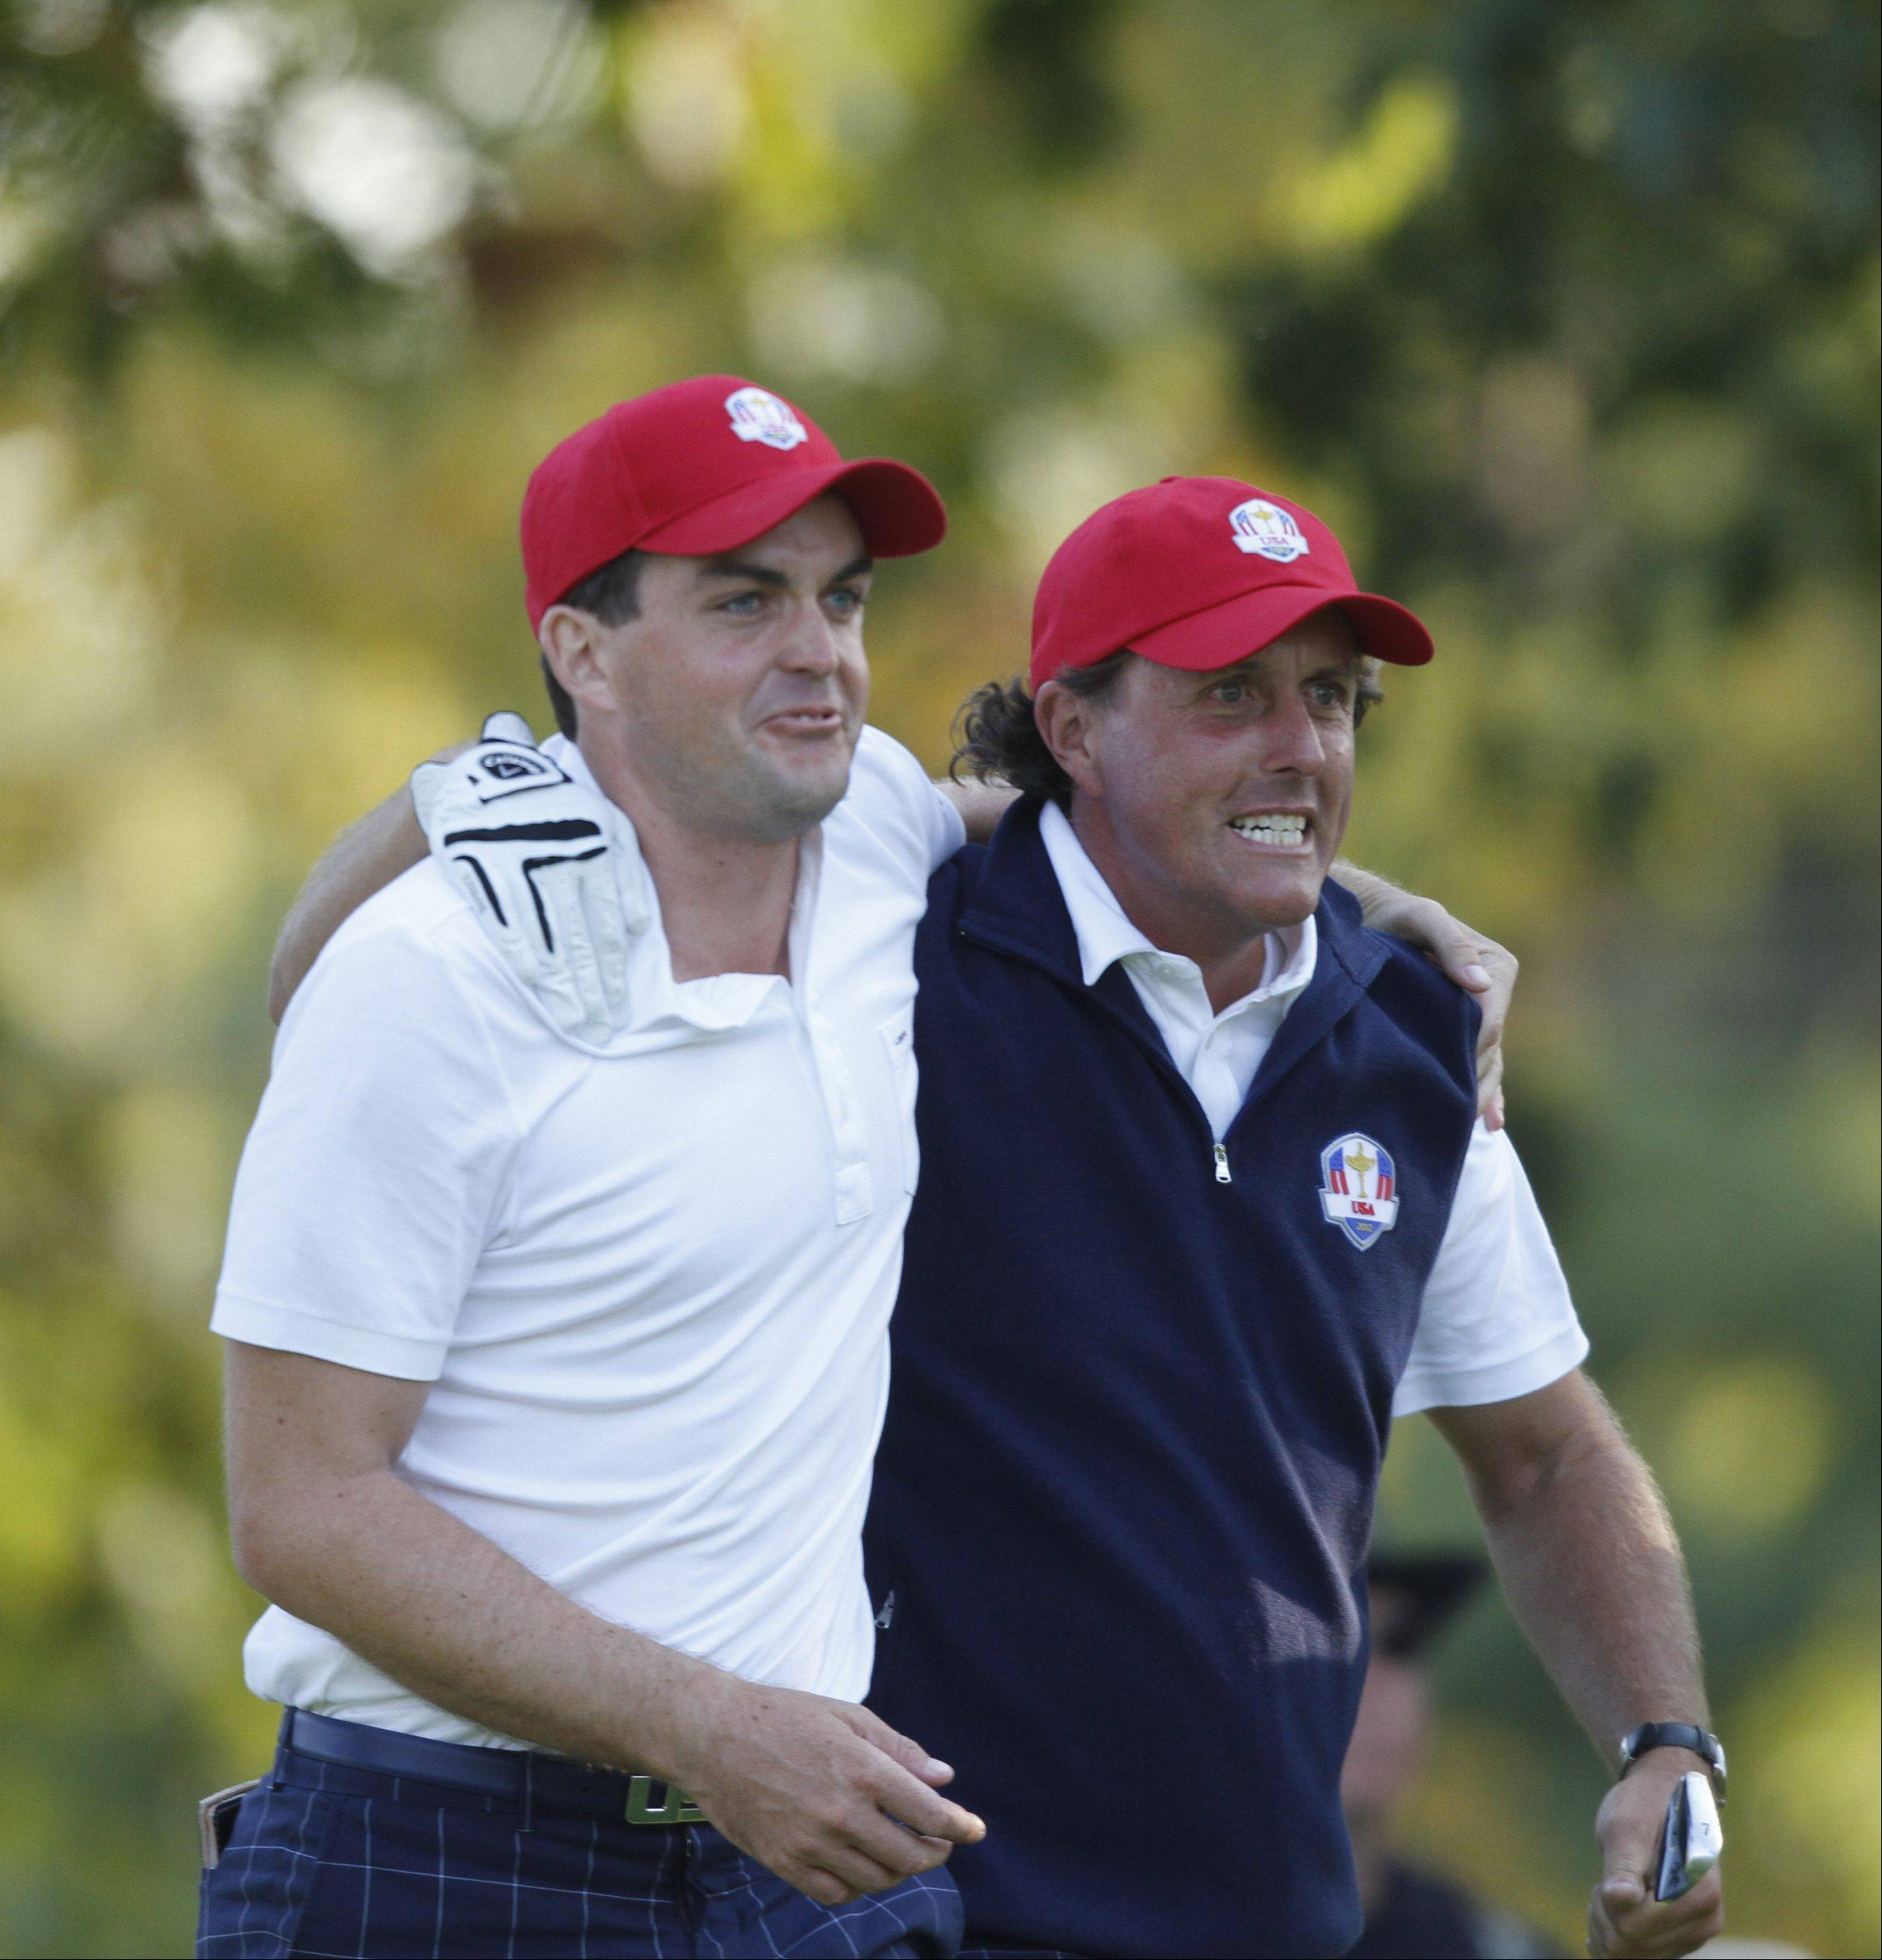 Keegan Bradley, left, and Phil Mickelson congratulate each other after Mickelson's drive on the 17th hole land just feet from the cup. That drive clinched the match for their round and gave the US team another point Friday afternoon at the 2012 Ryder Cup at Medinah Country Club.